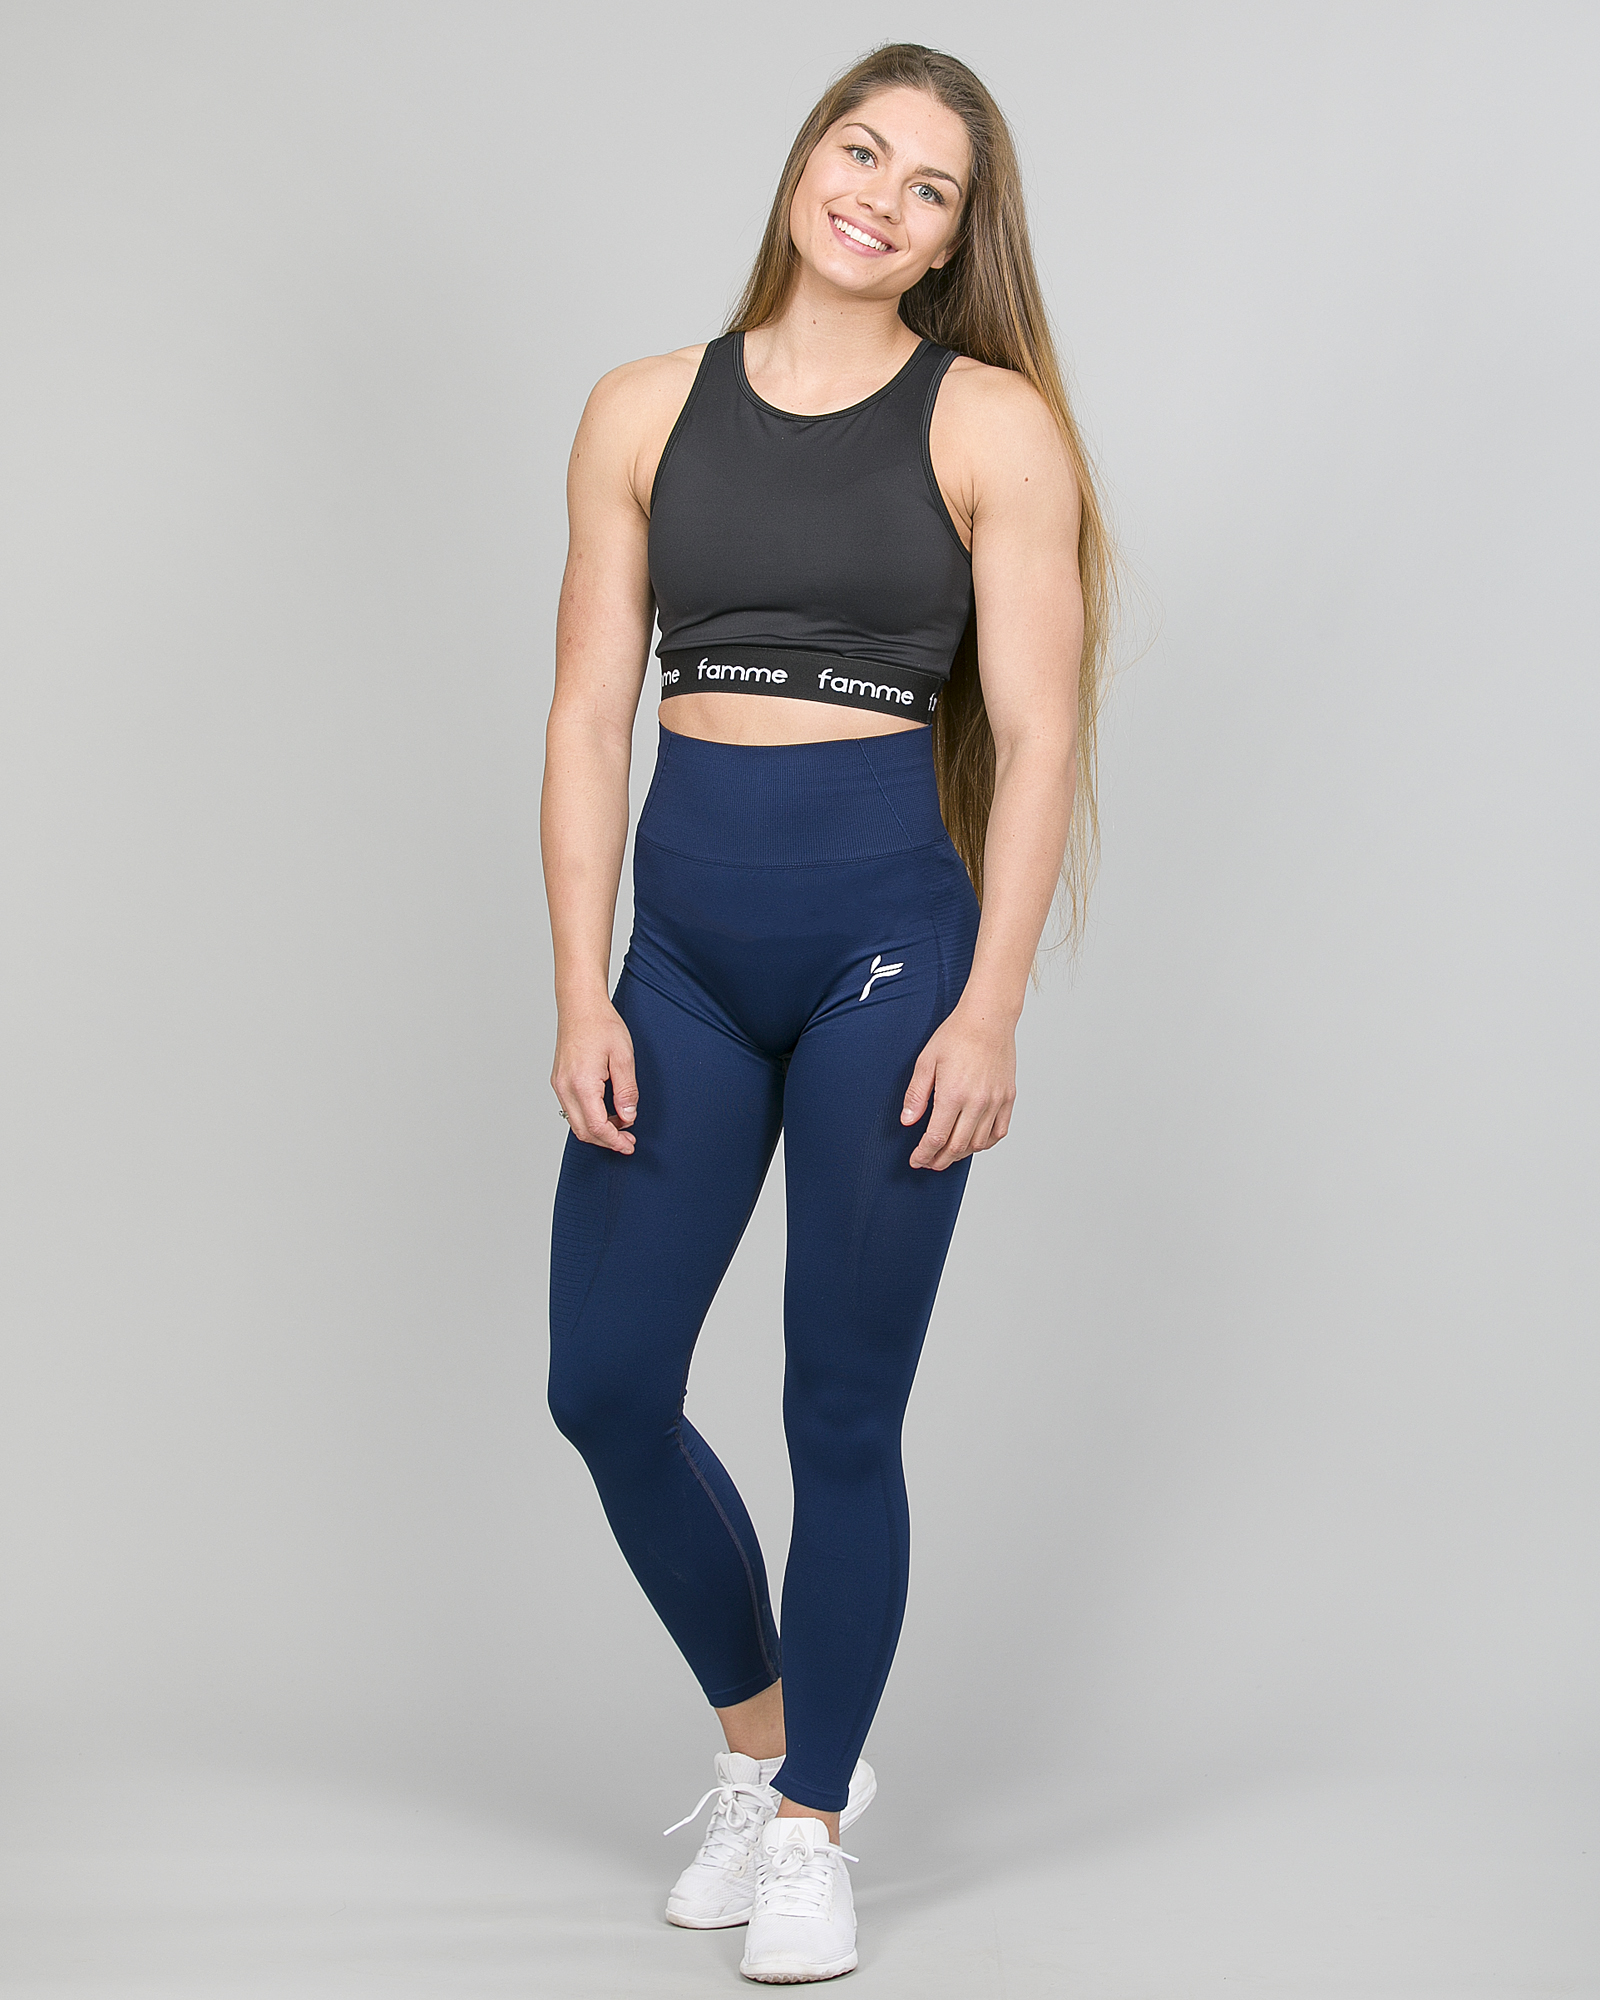 Famme Vortex Legging - Navy Blue vhwl-nv and Famme Crop Top - Black bct-bk